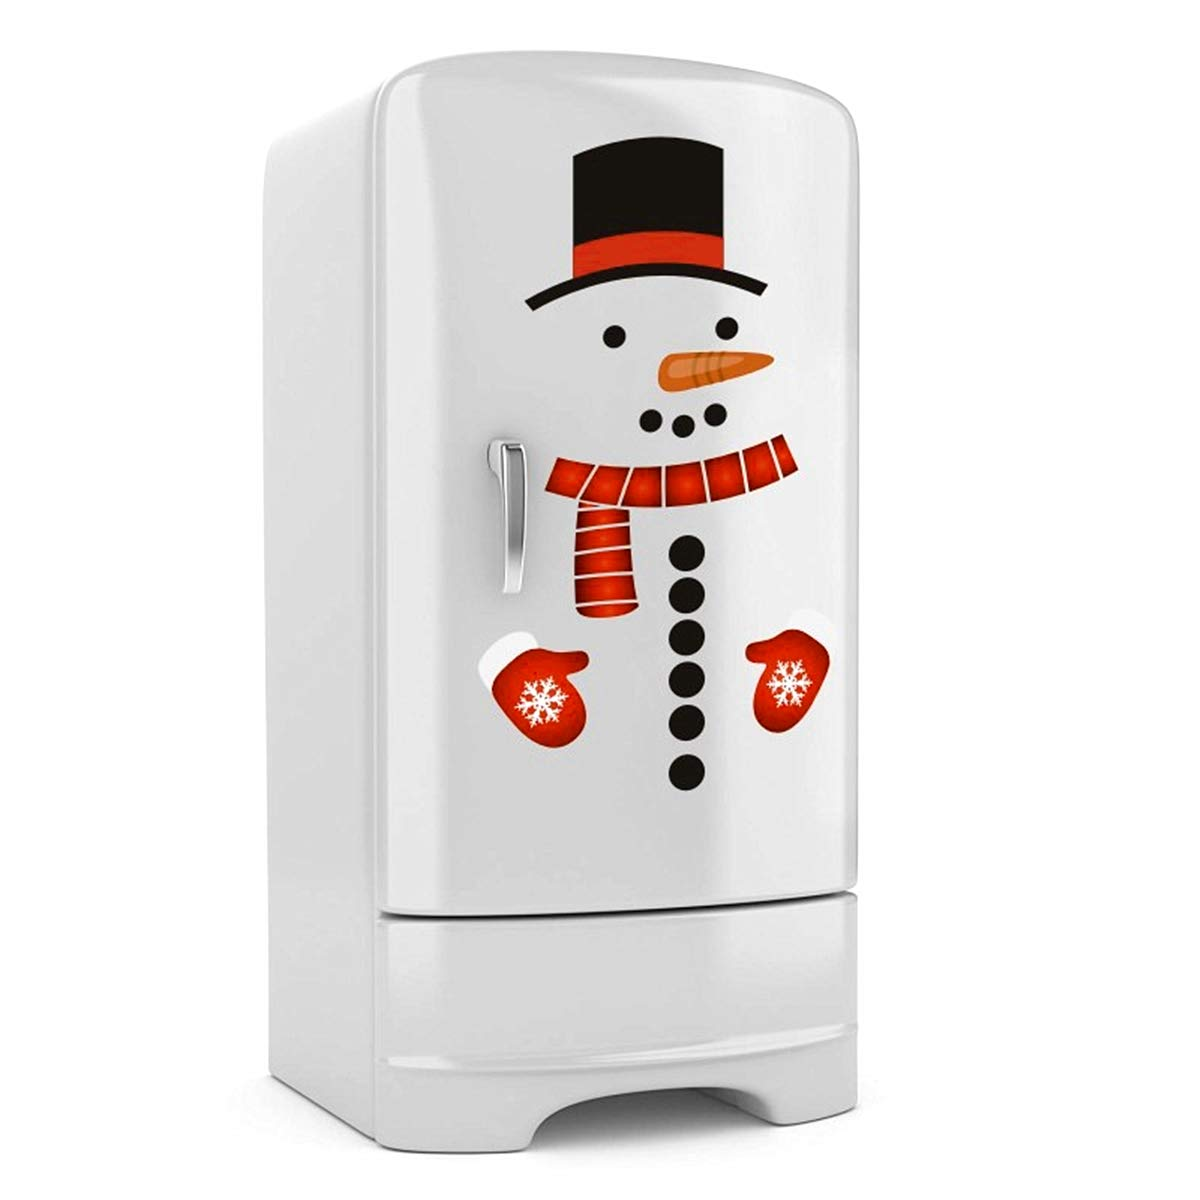 Wen XinRong Christmas Decorations Cute Snowman Refrigerator Stickers Fridge Wall Stickers Holiday Christmas Decorations for Fridge, Metal Door, Windows, Garage, Office Cabinets